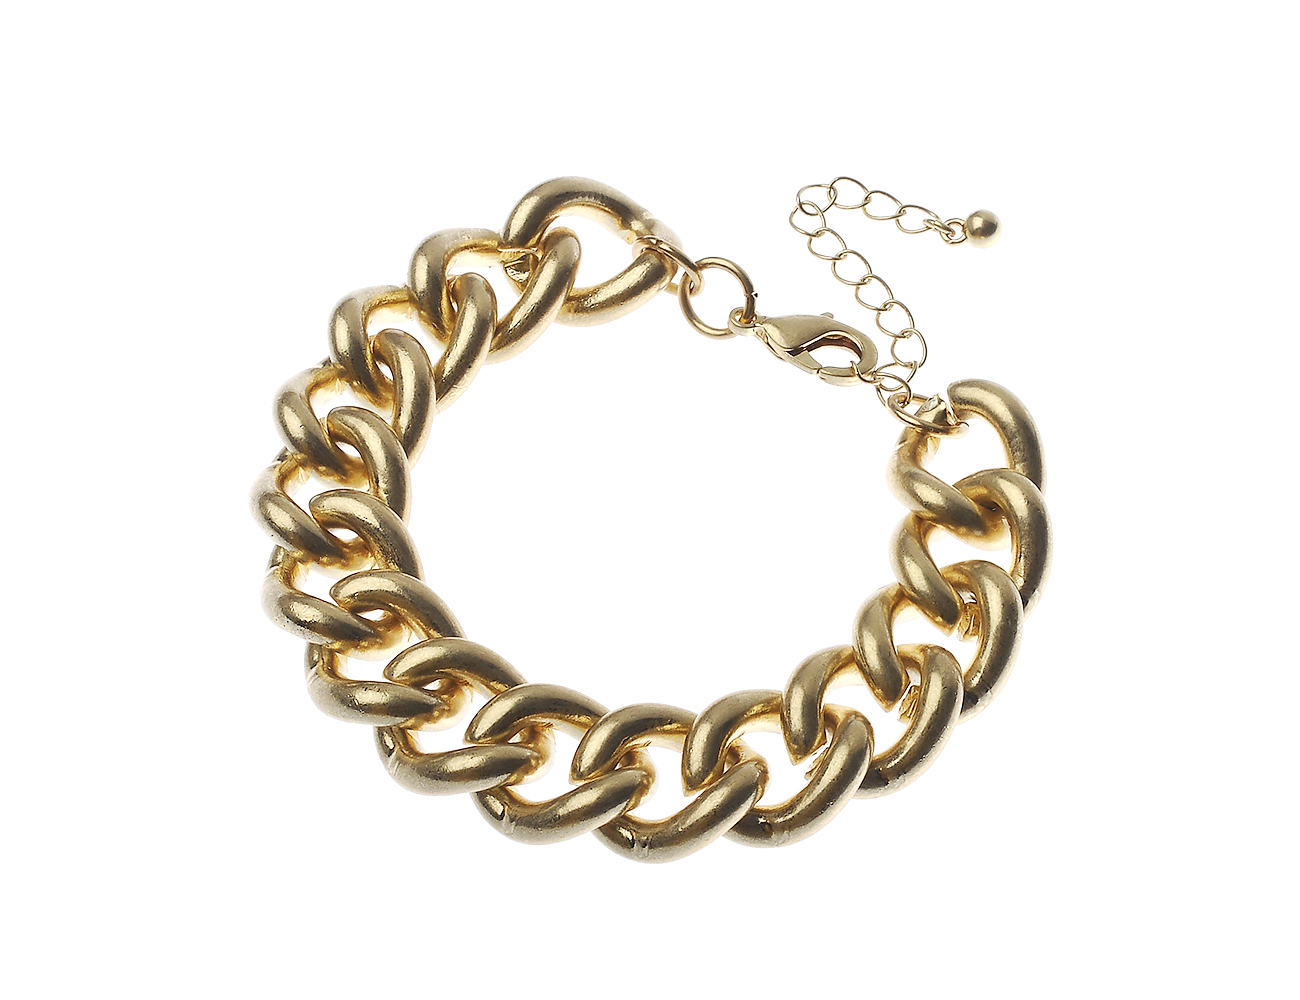 Worn Gold Curb Chain Bracelet